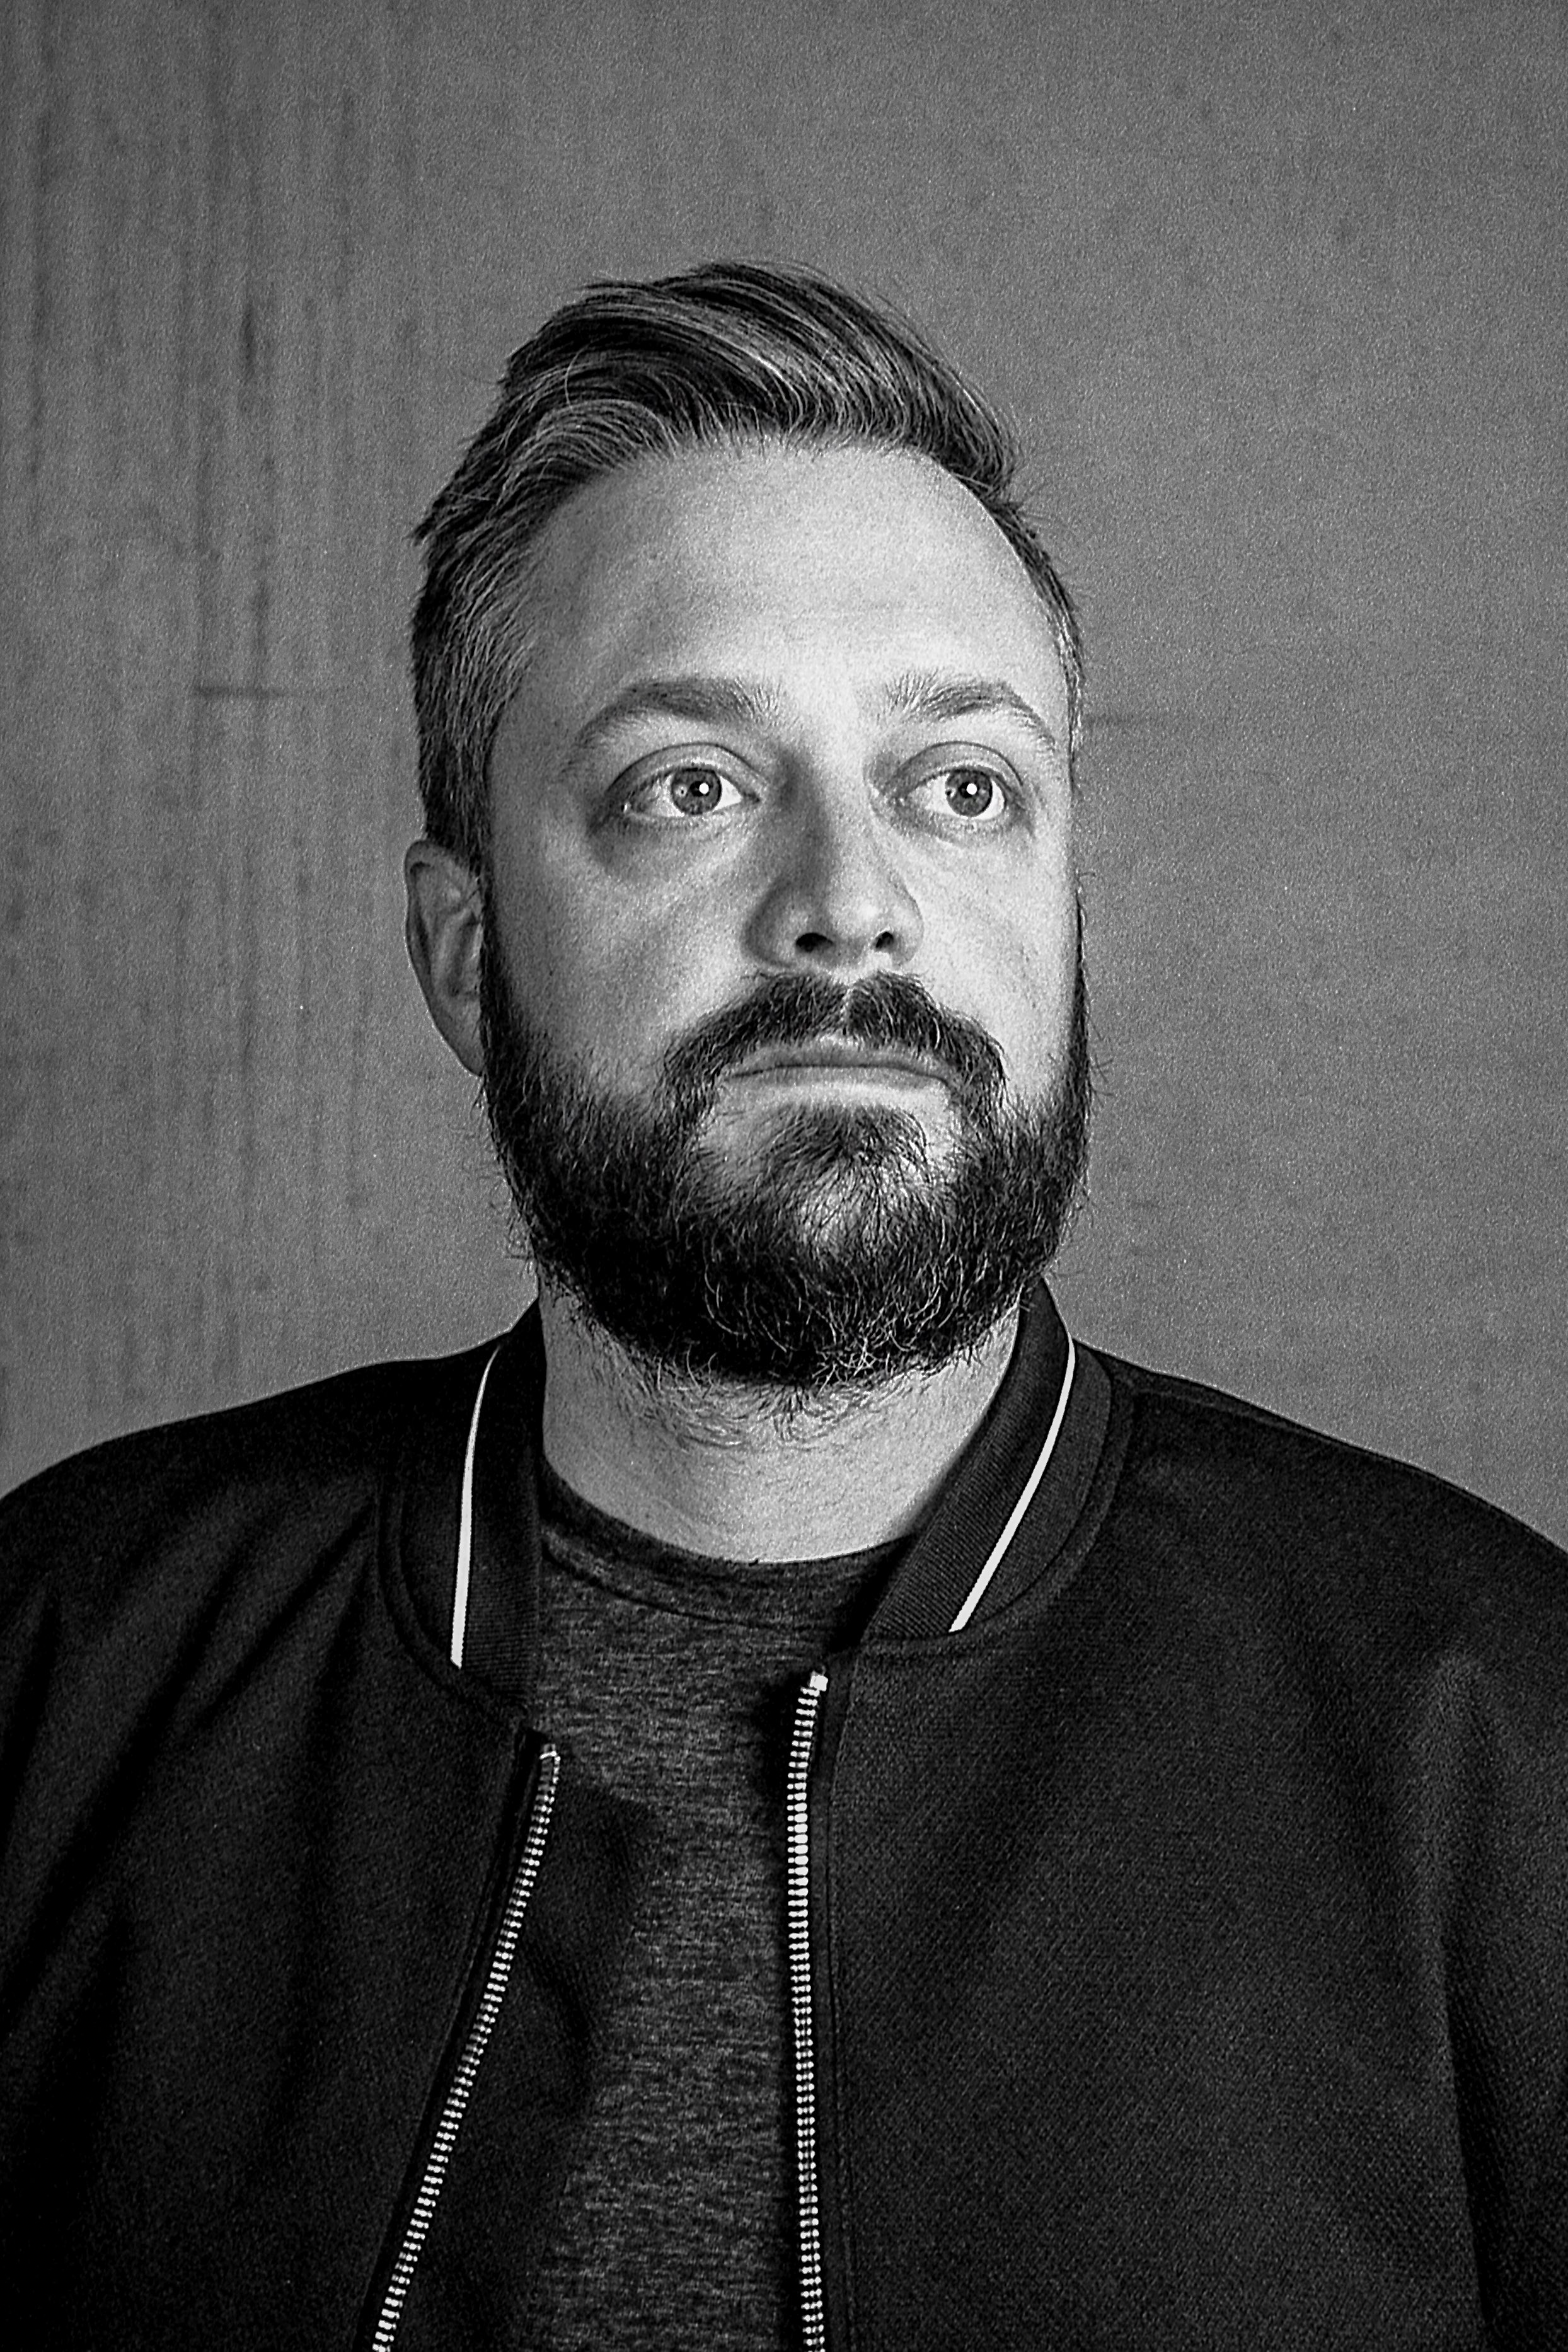 Comedian Nate Bargatze / Matt Pittman / Huntsville, AL / Ilford HP5 / Leica M7 / Paul C. Buff Lighting